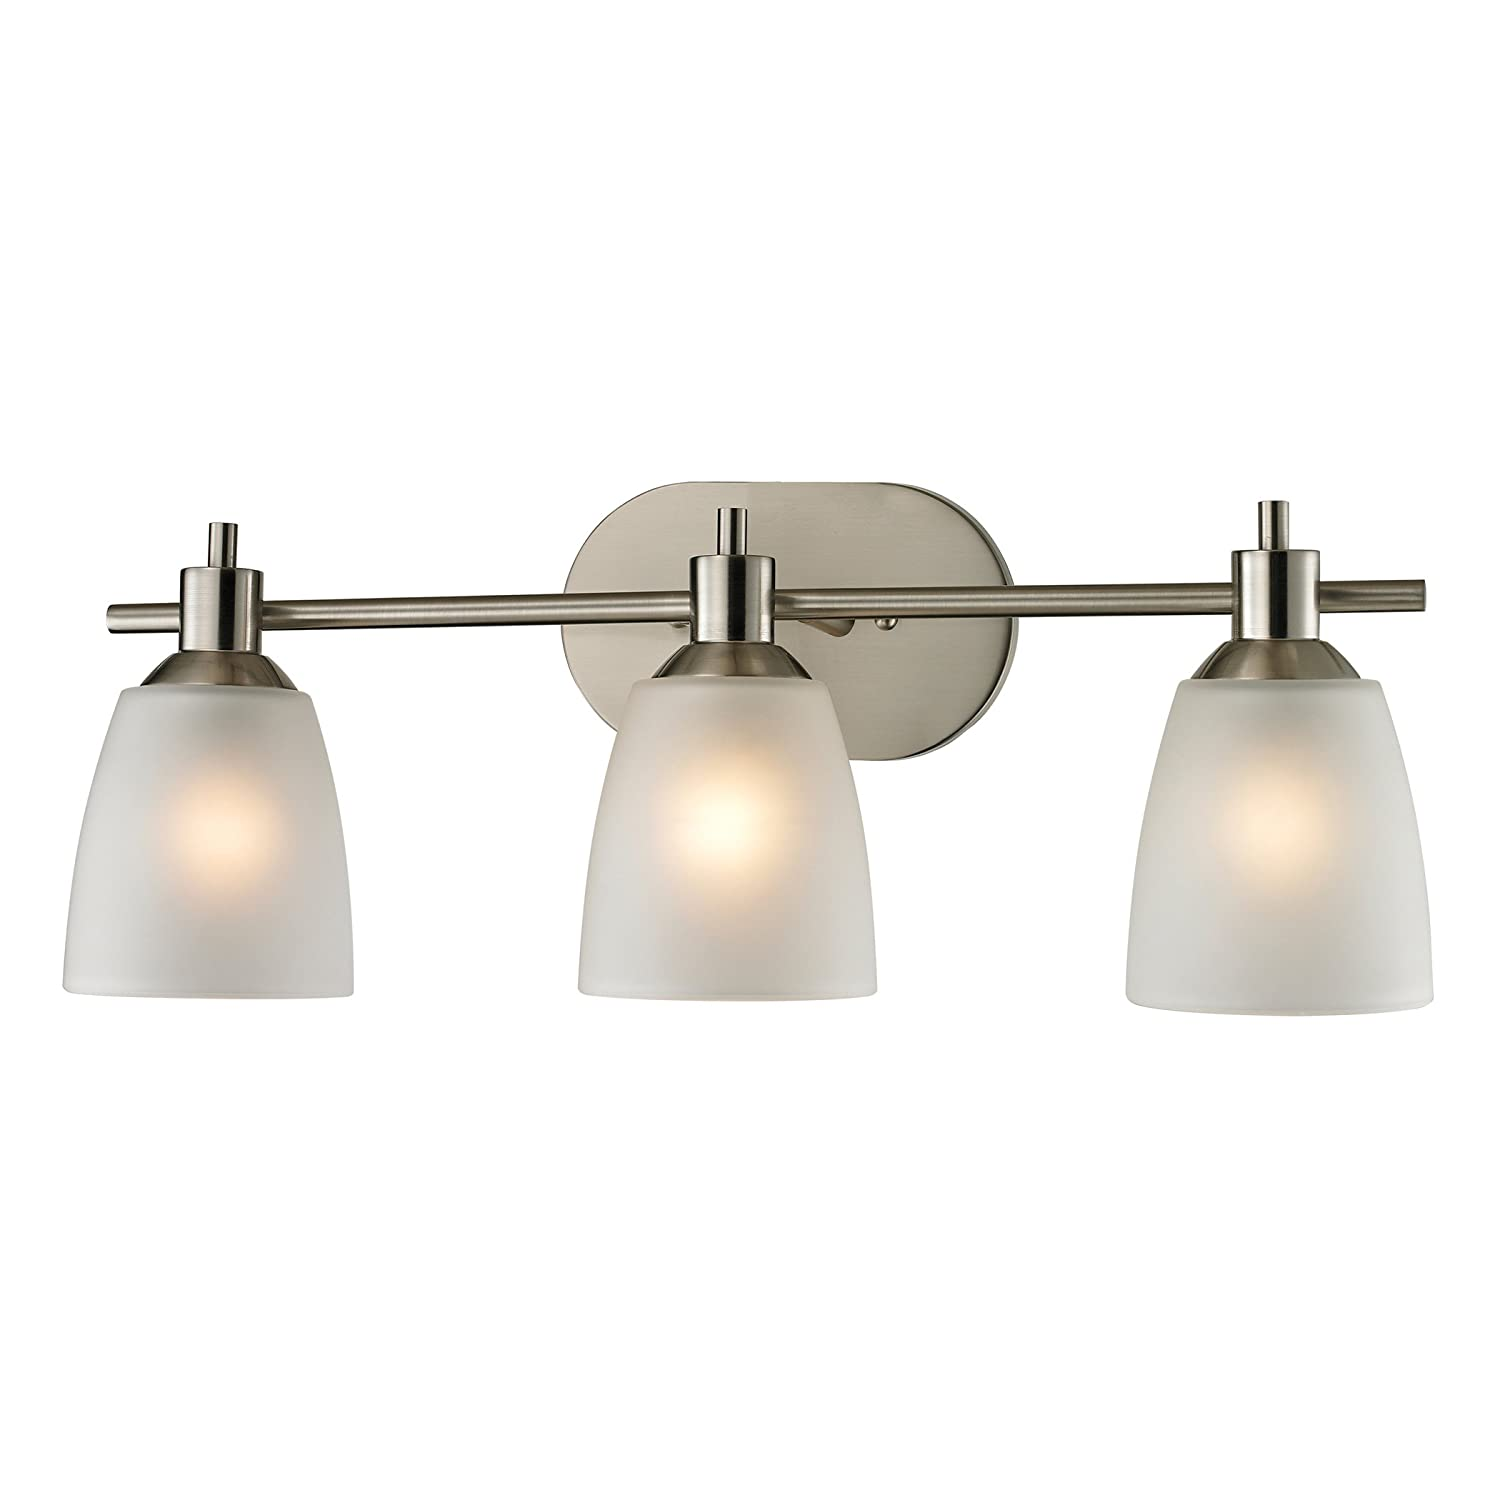 Cornerstone Lighting 1303BB 20 Jackson 3 Light Bath Bar, Brushed Nickel